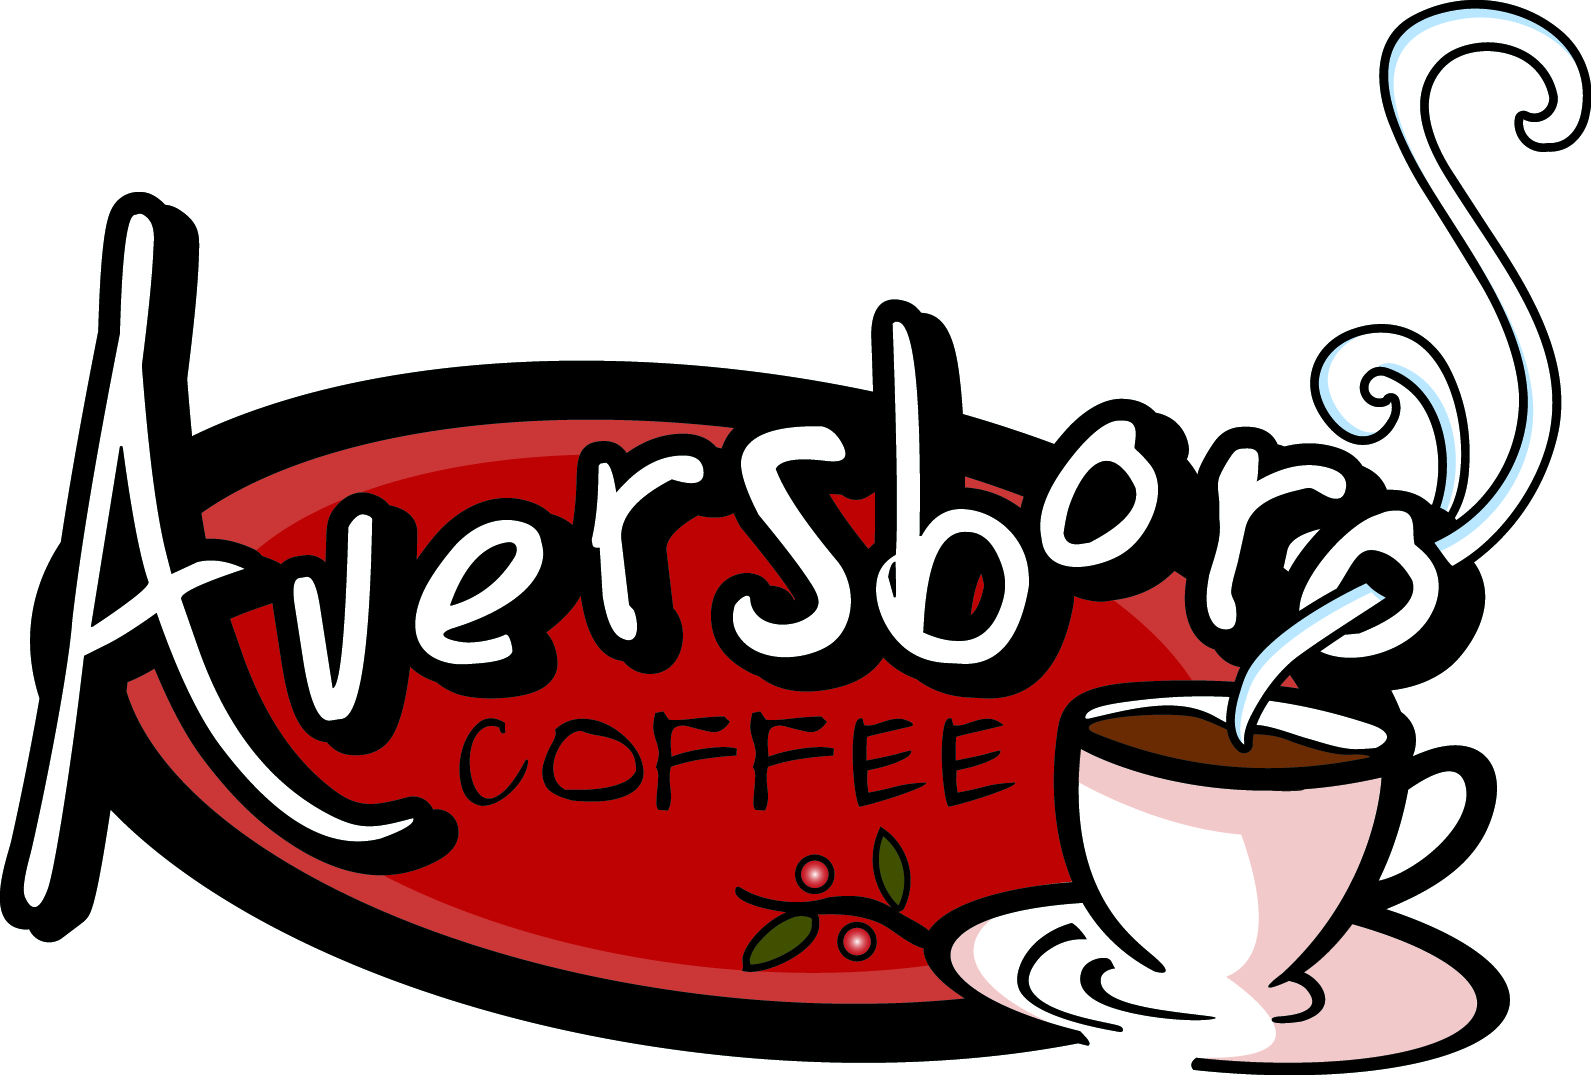 Aversboro Coffee